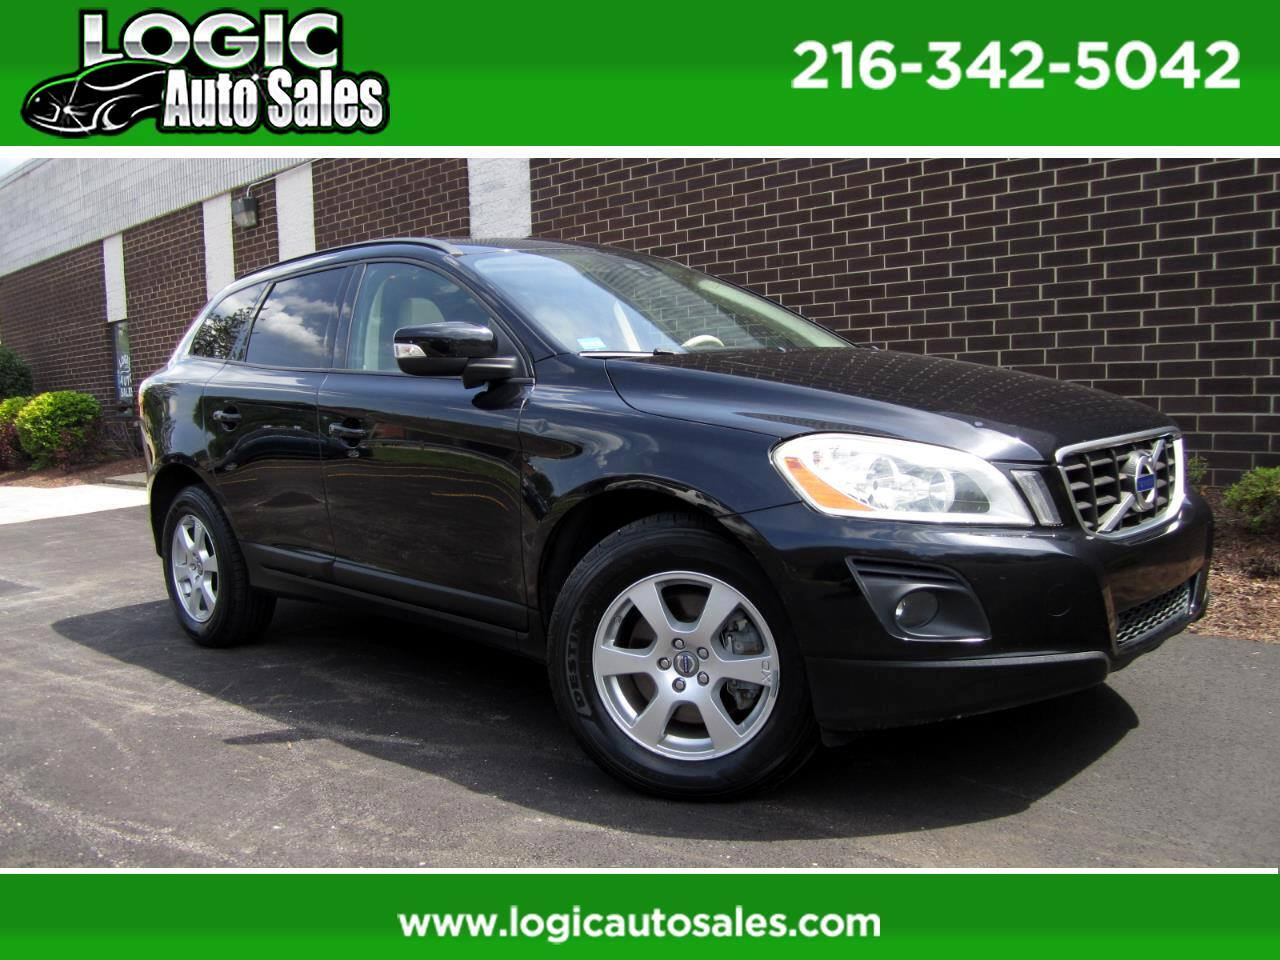 2010 Volvo XC60 FWD 4dr 3.2L